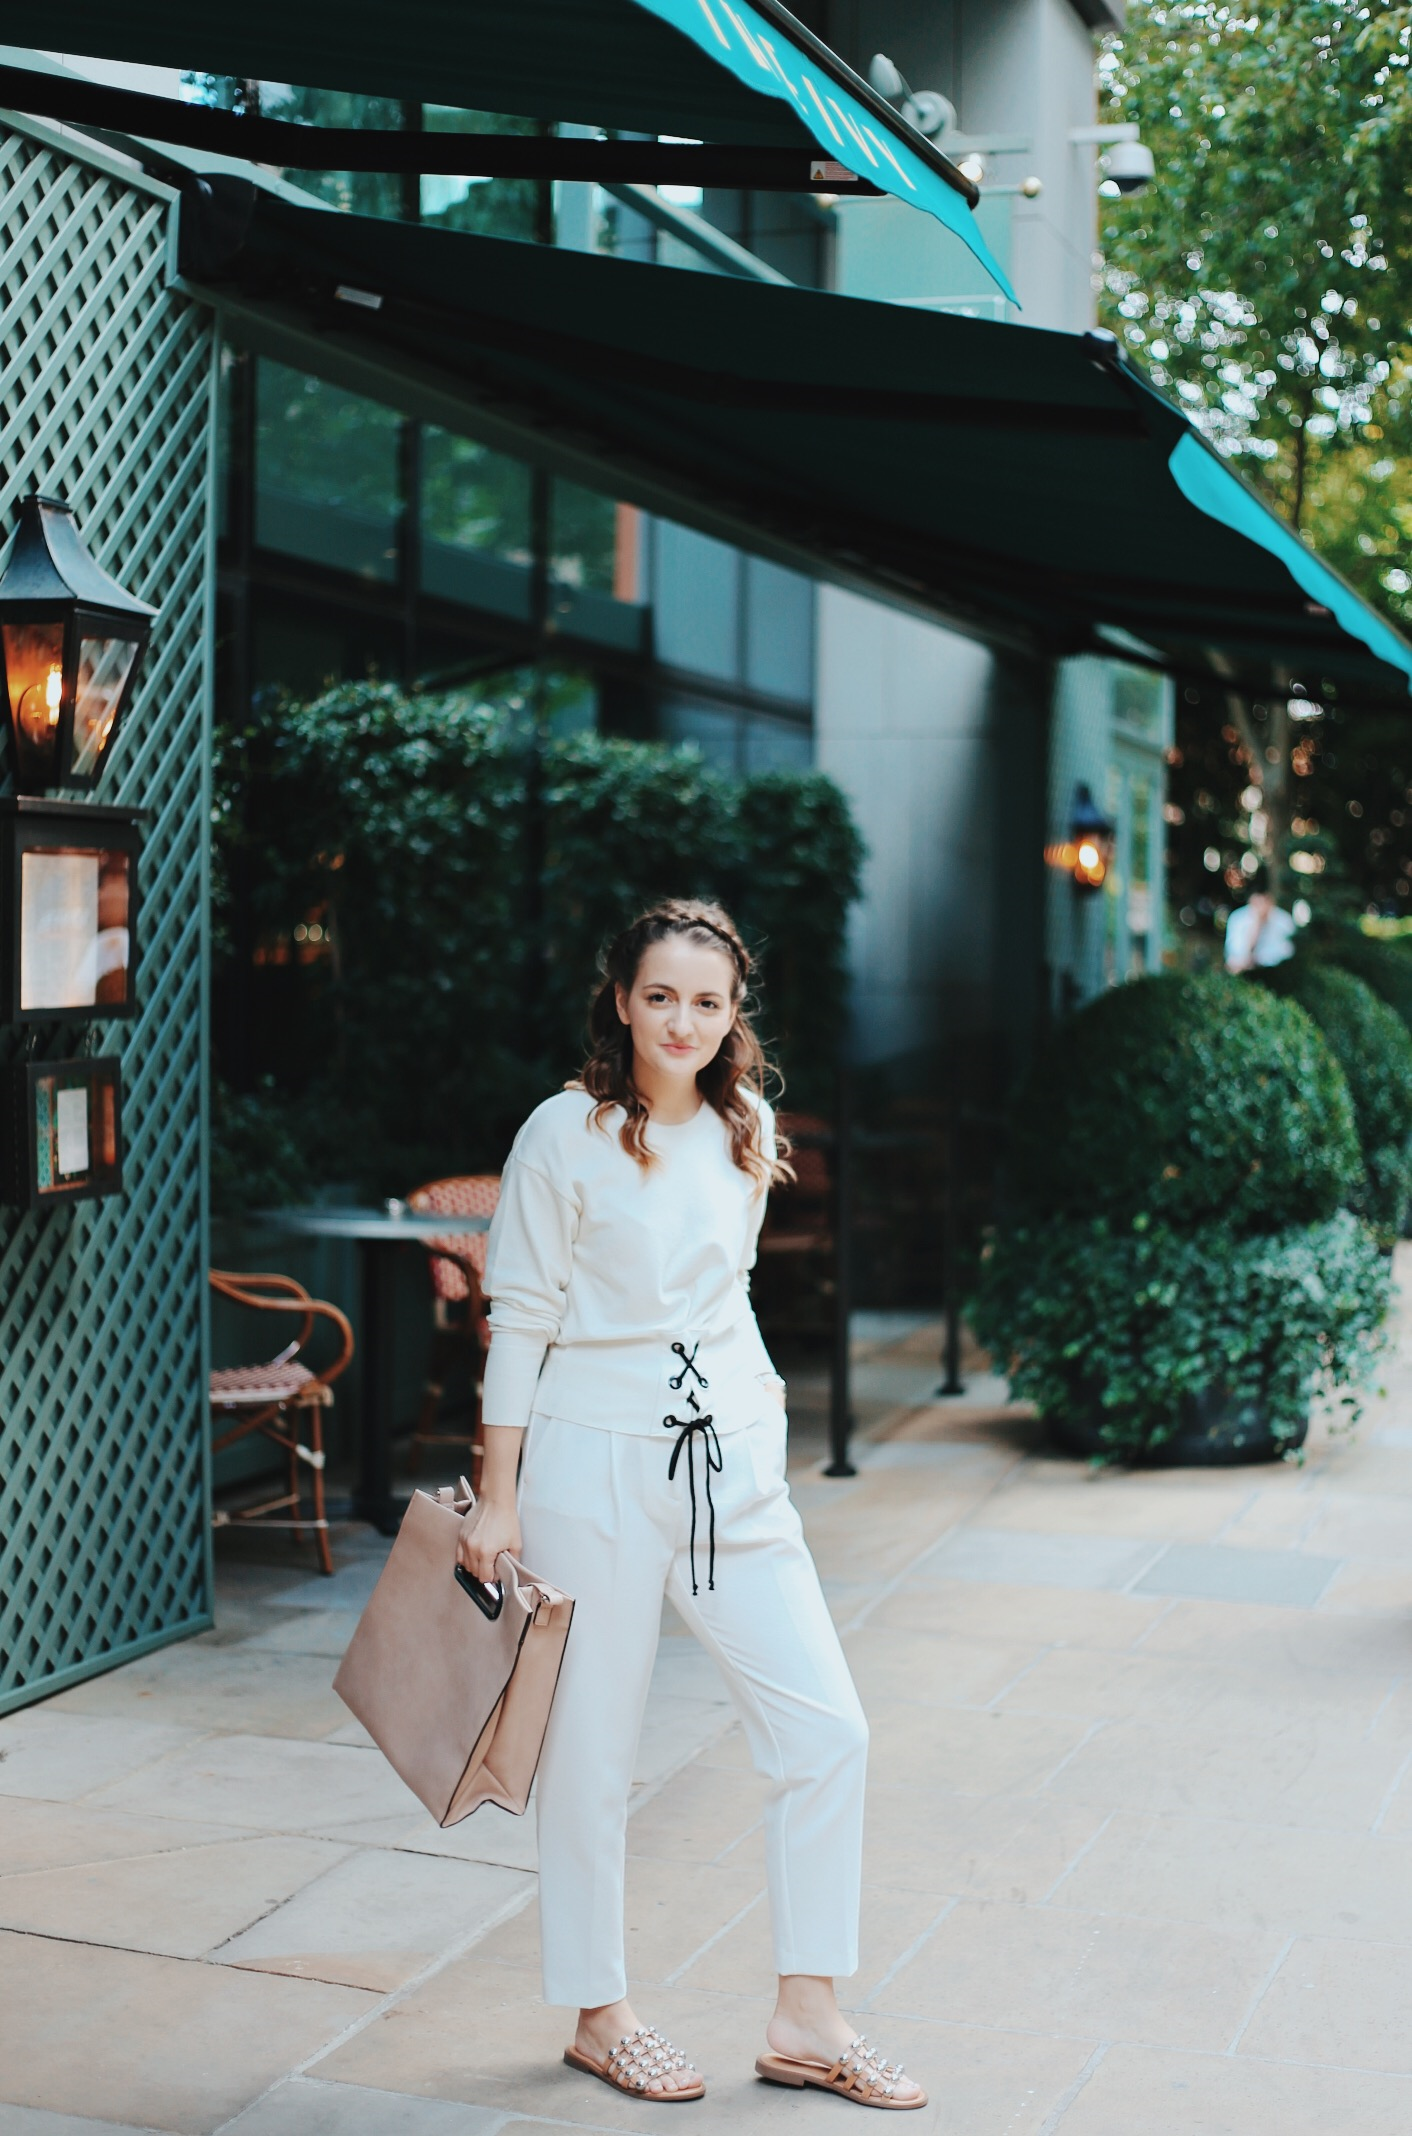 5 simple ways to make affordable clothes look expensive - Launeden